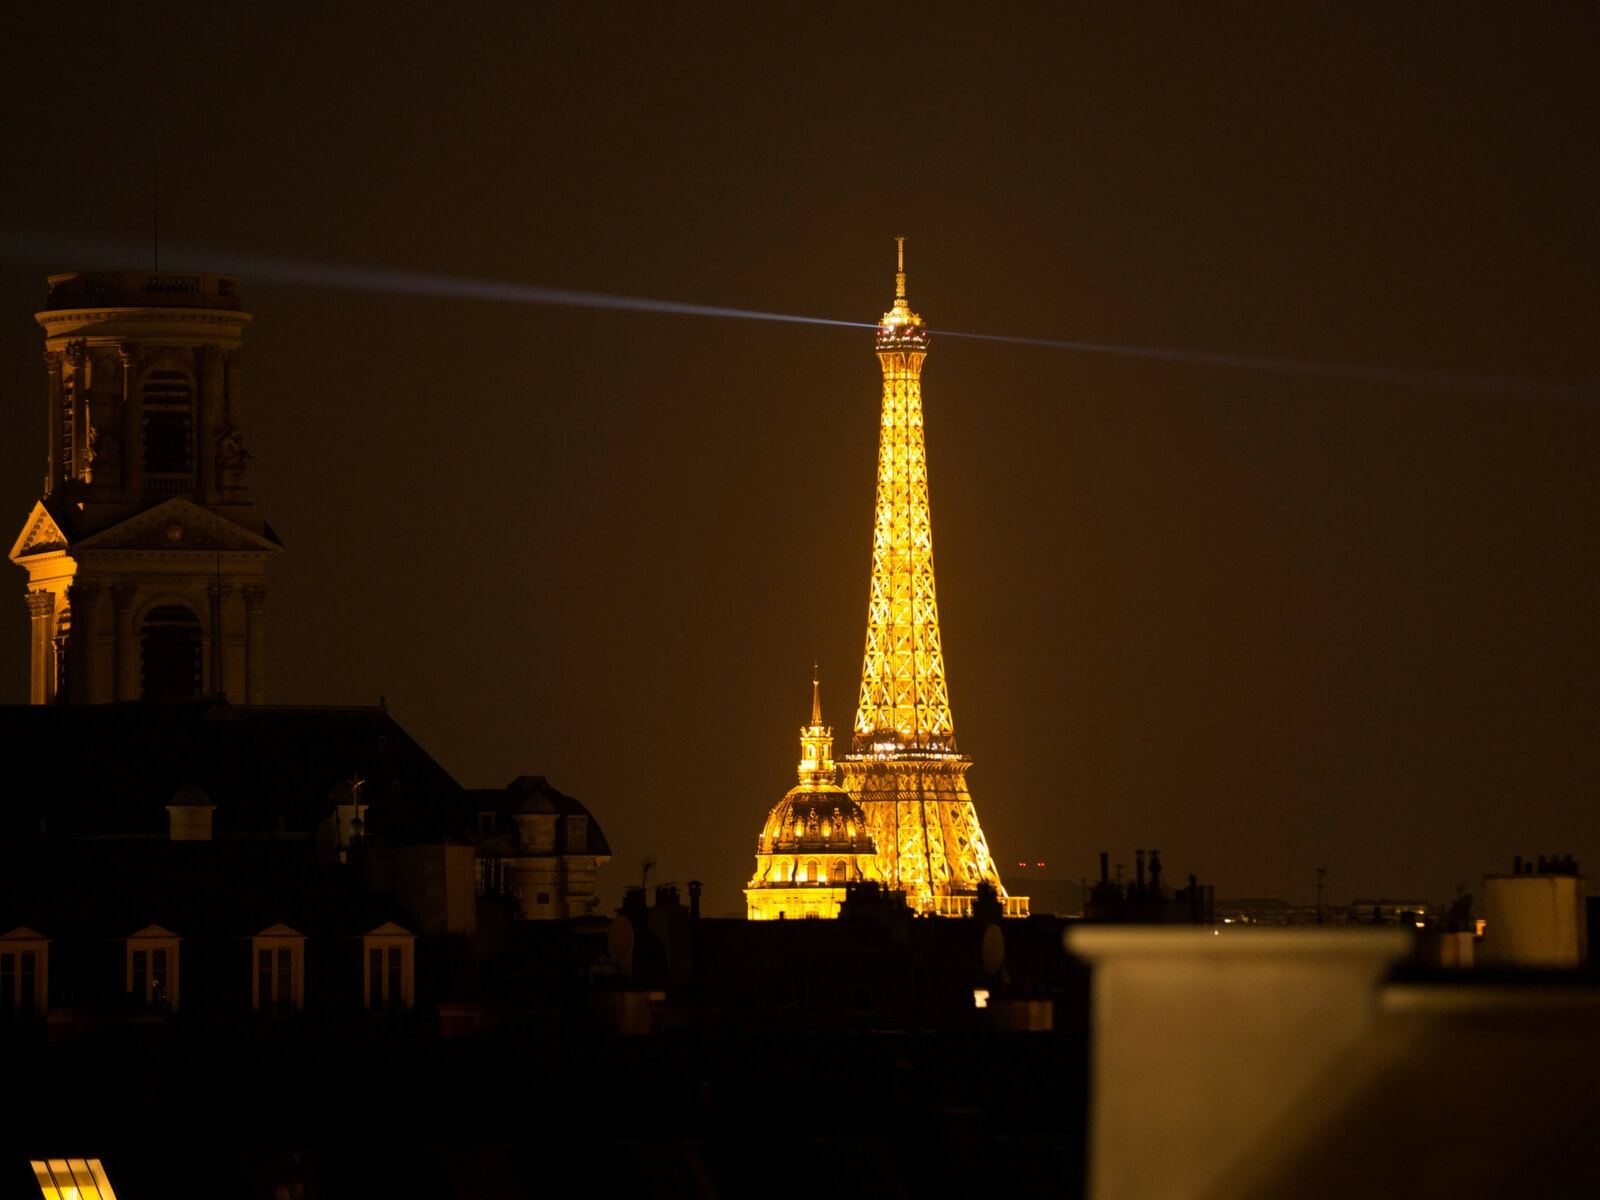 Eiffel Tower at night seen from the Paris rooftops; things to do in paris for first time visitors